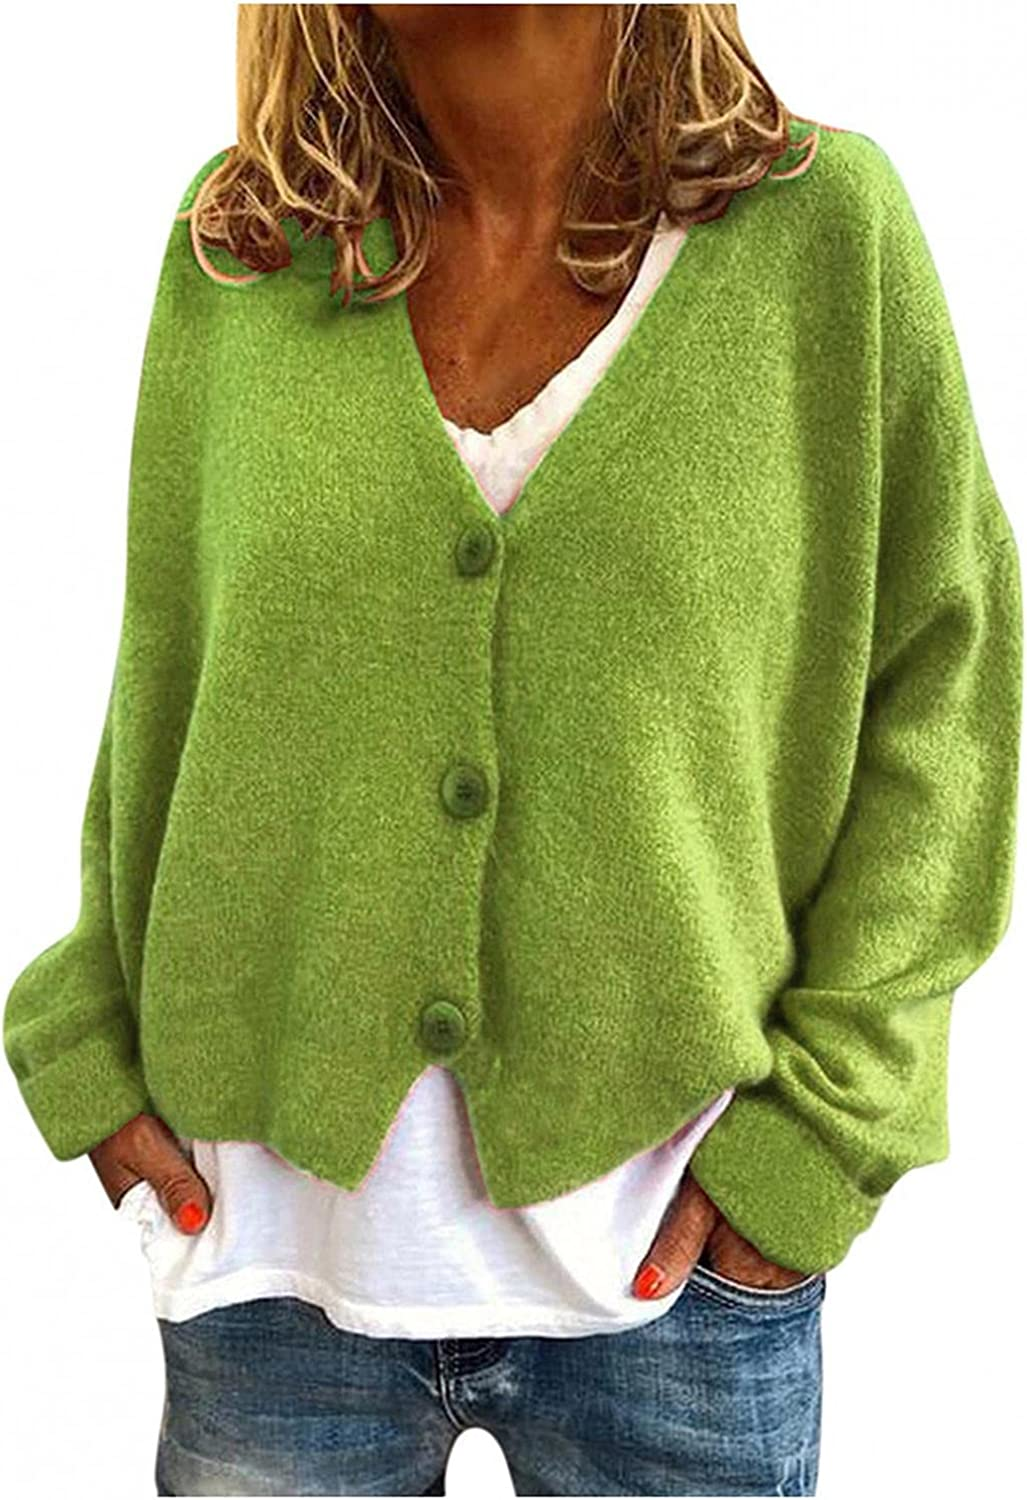 Cardigan for Womens Sweater Coat Long Sleeve Solid Color Button Autumn Fleece Casual Jacket Blouse Tops